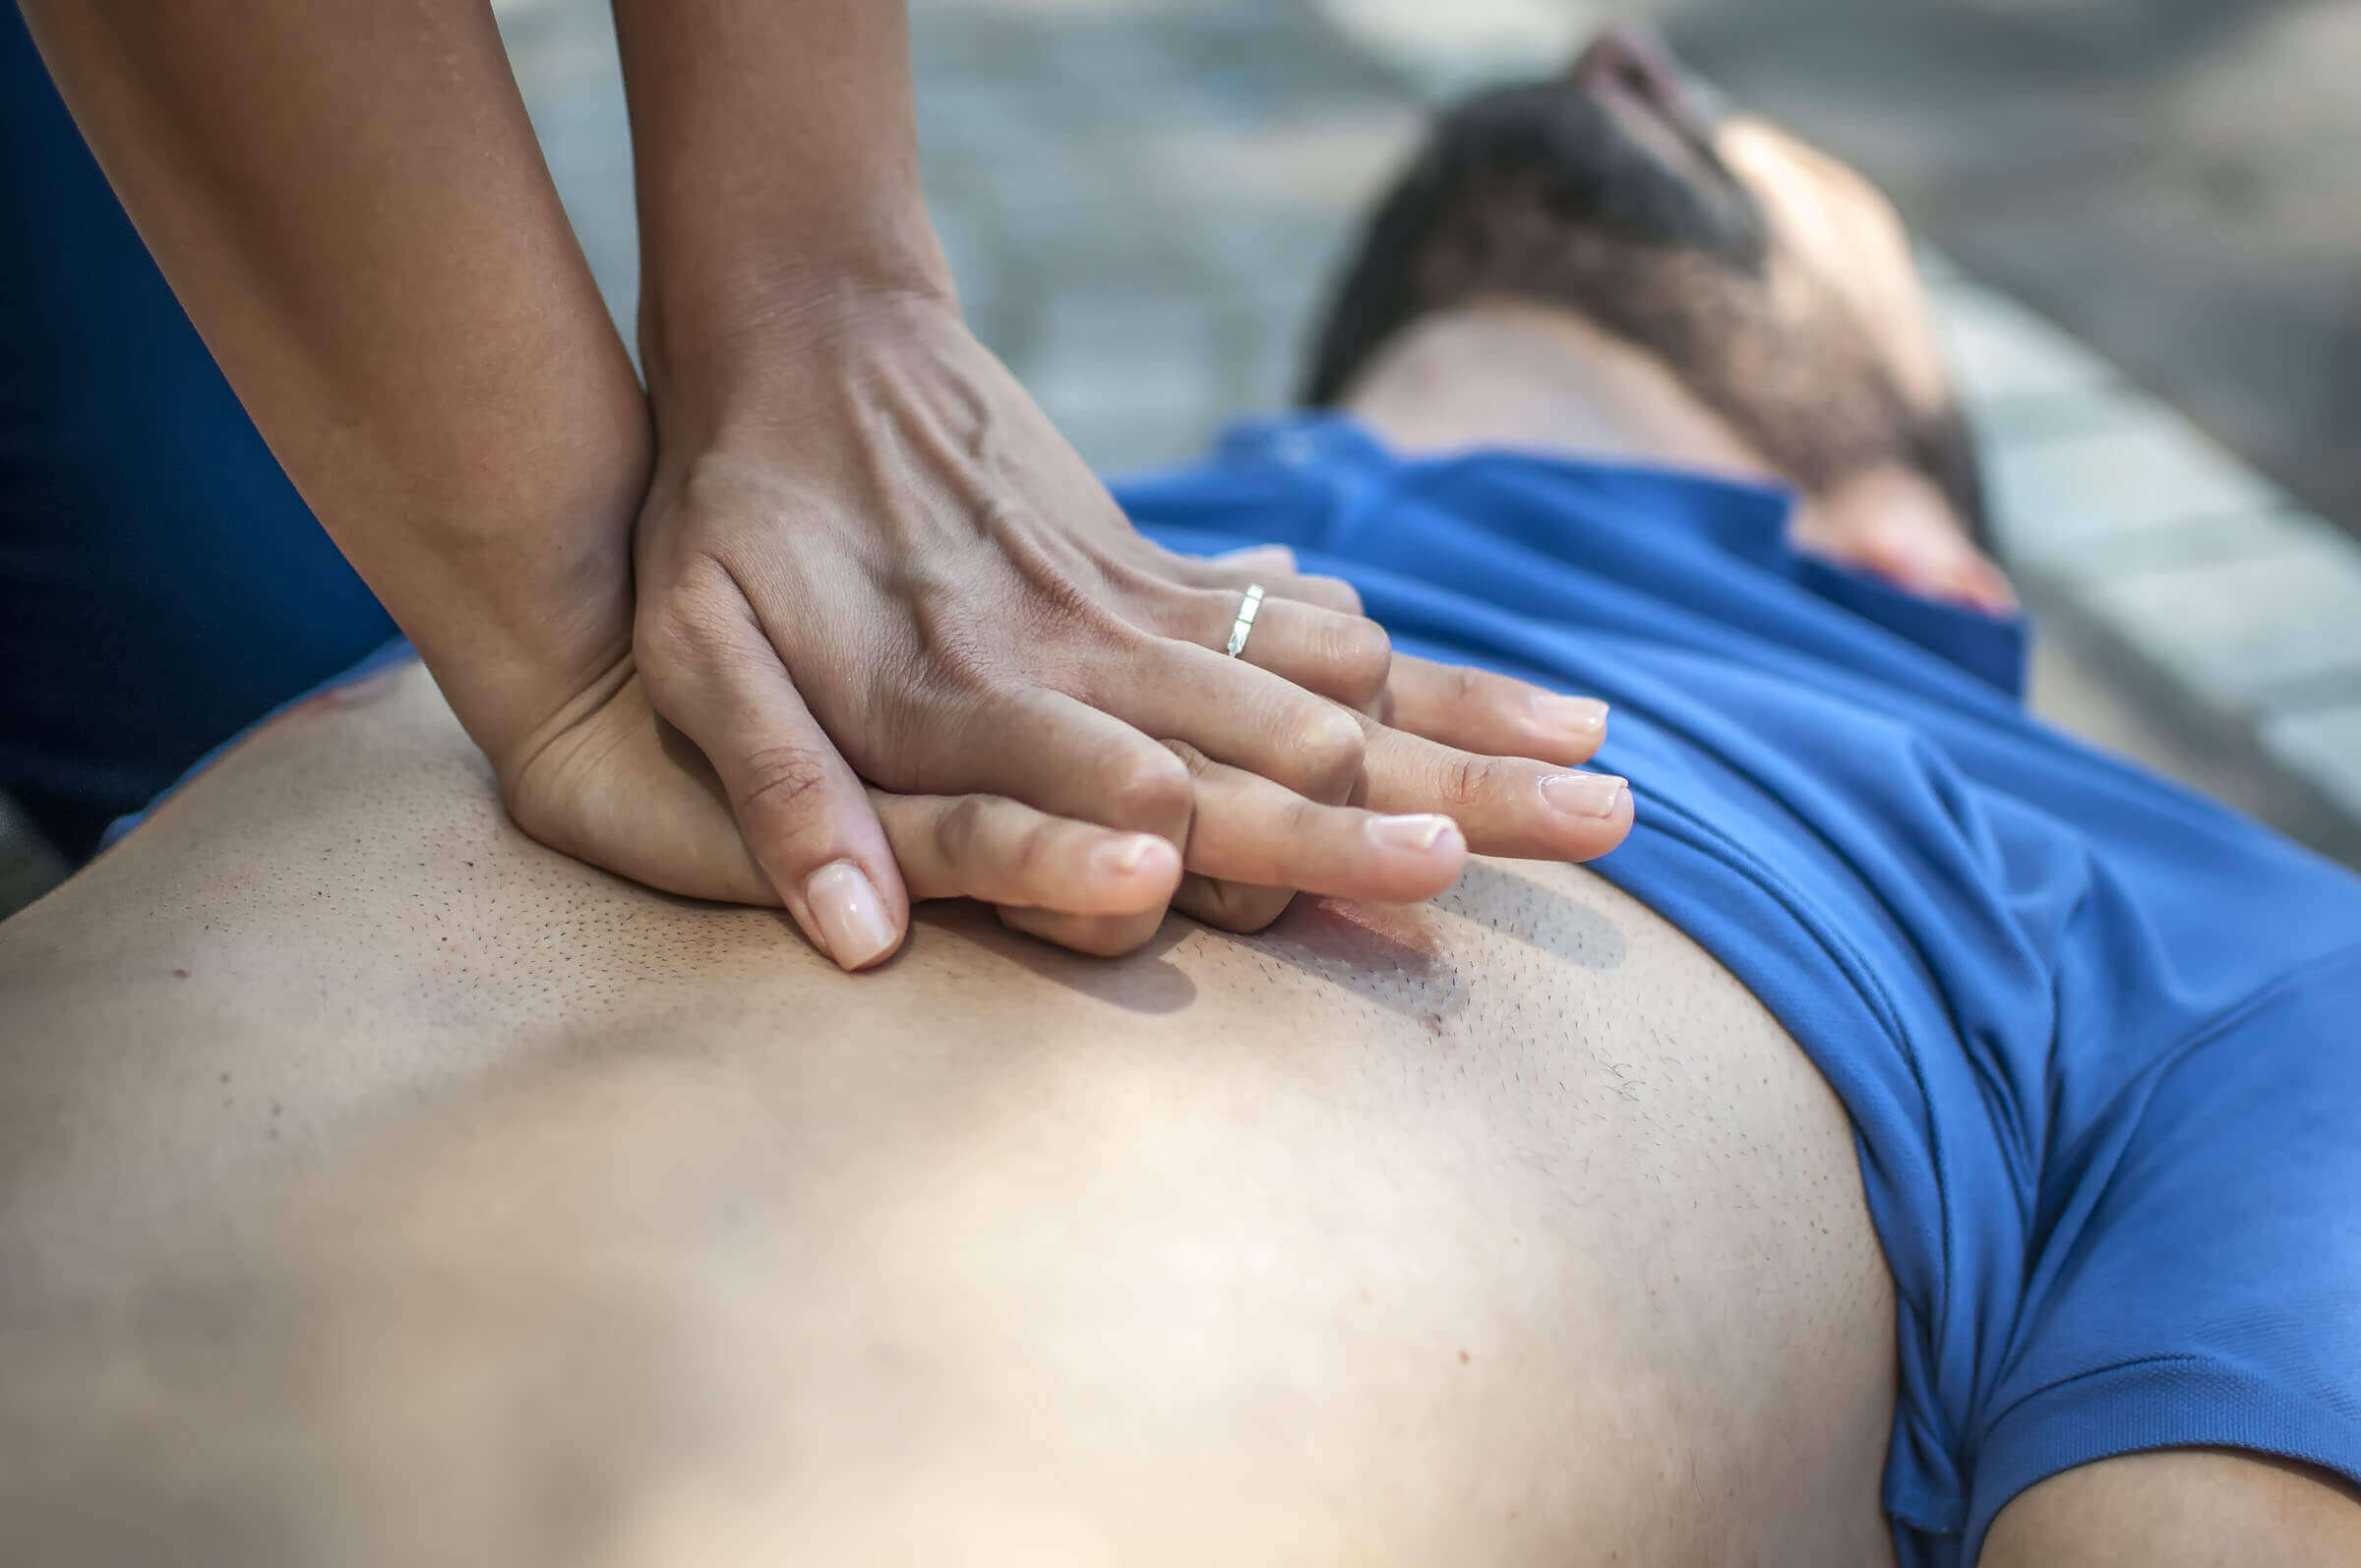 Does BLS include First Aid and CPR?